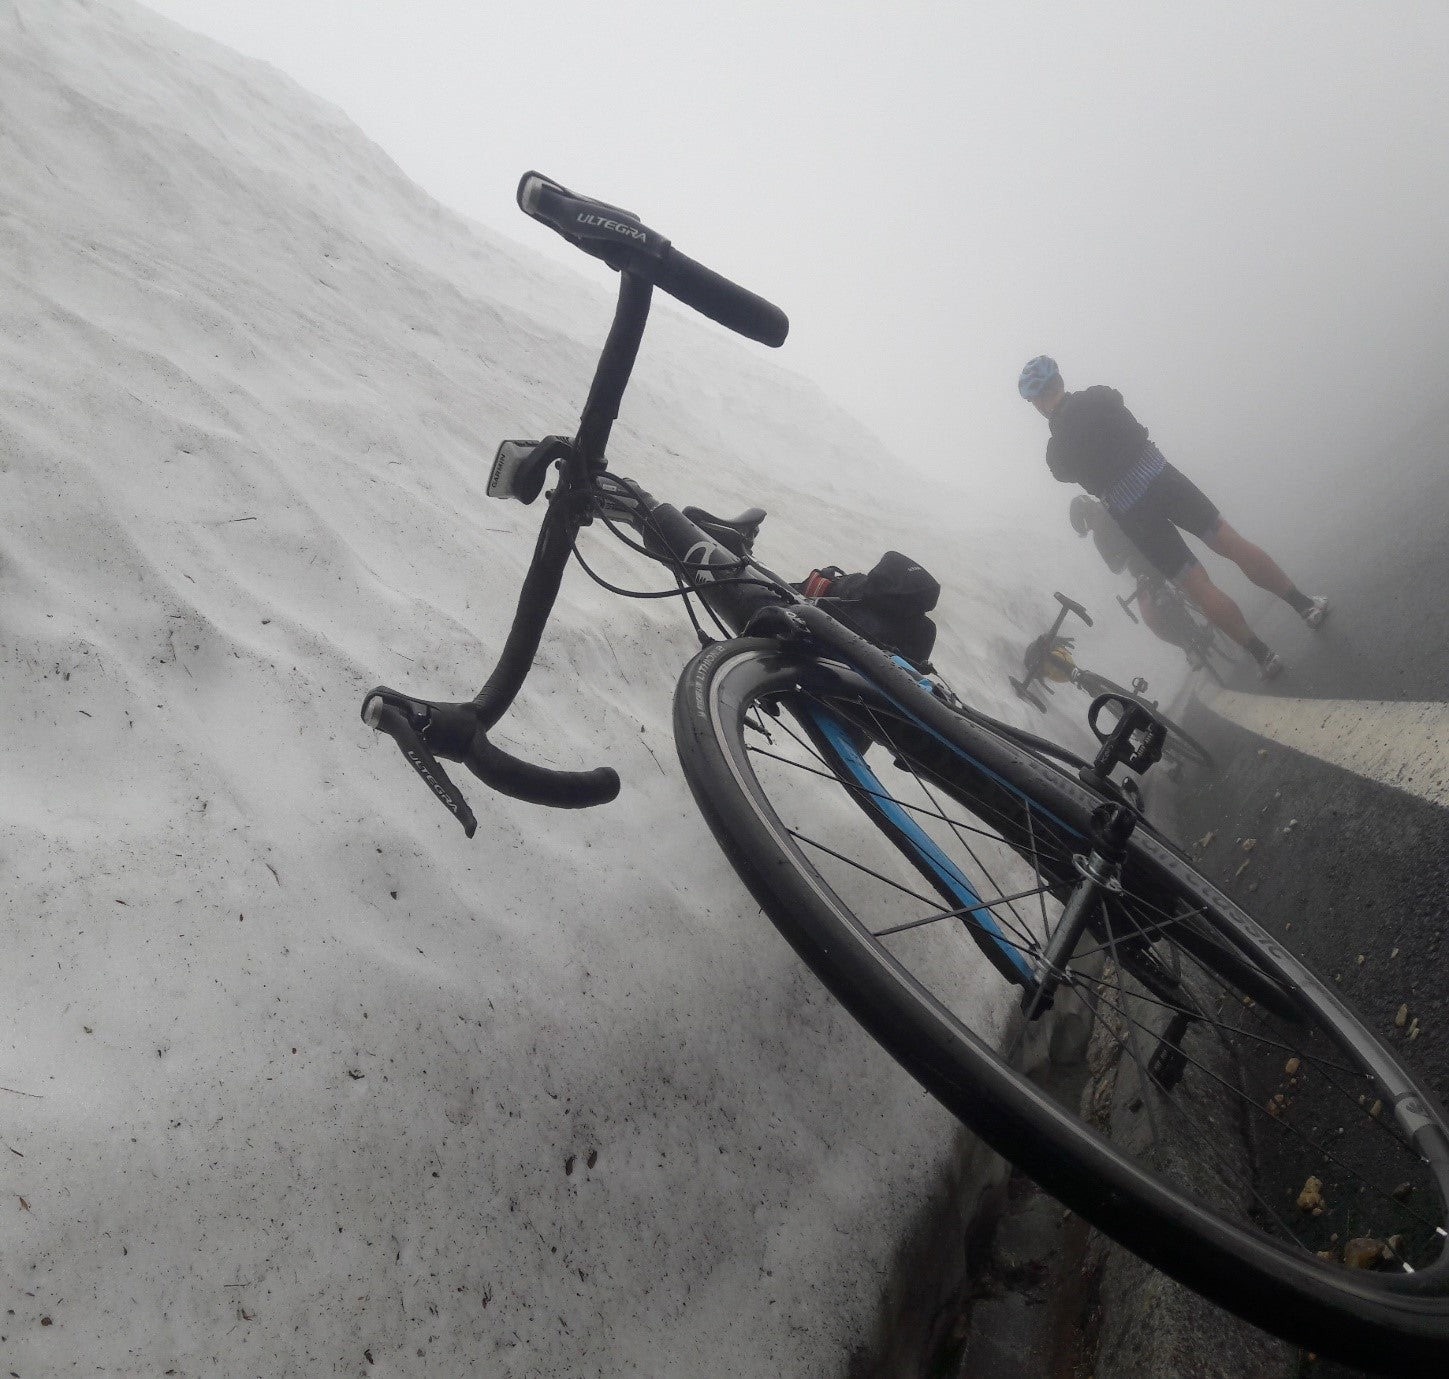 The 5-meter-high snow banks, mist and cold on one side of the mountain.